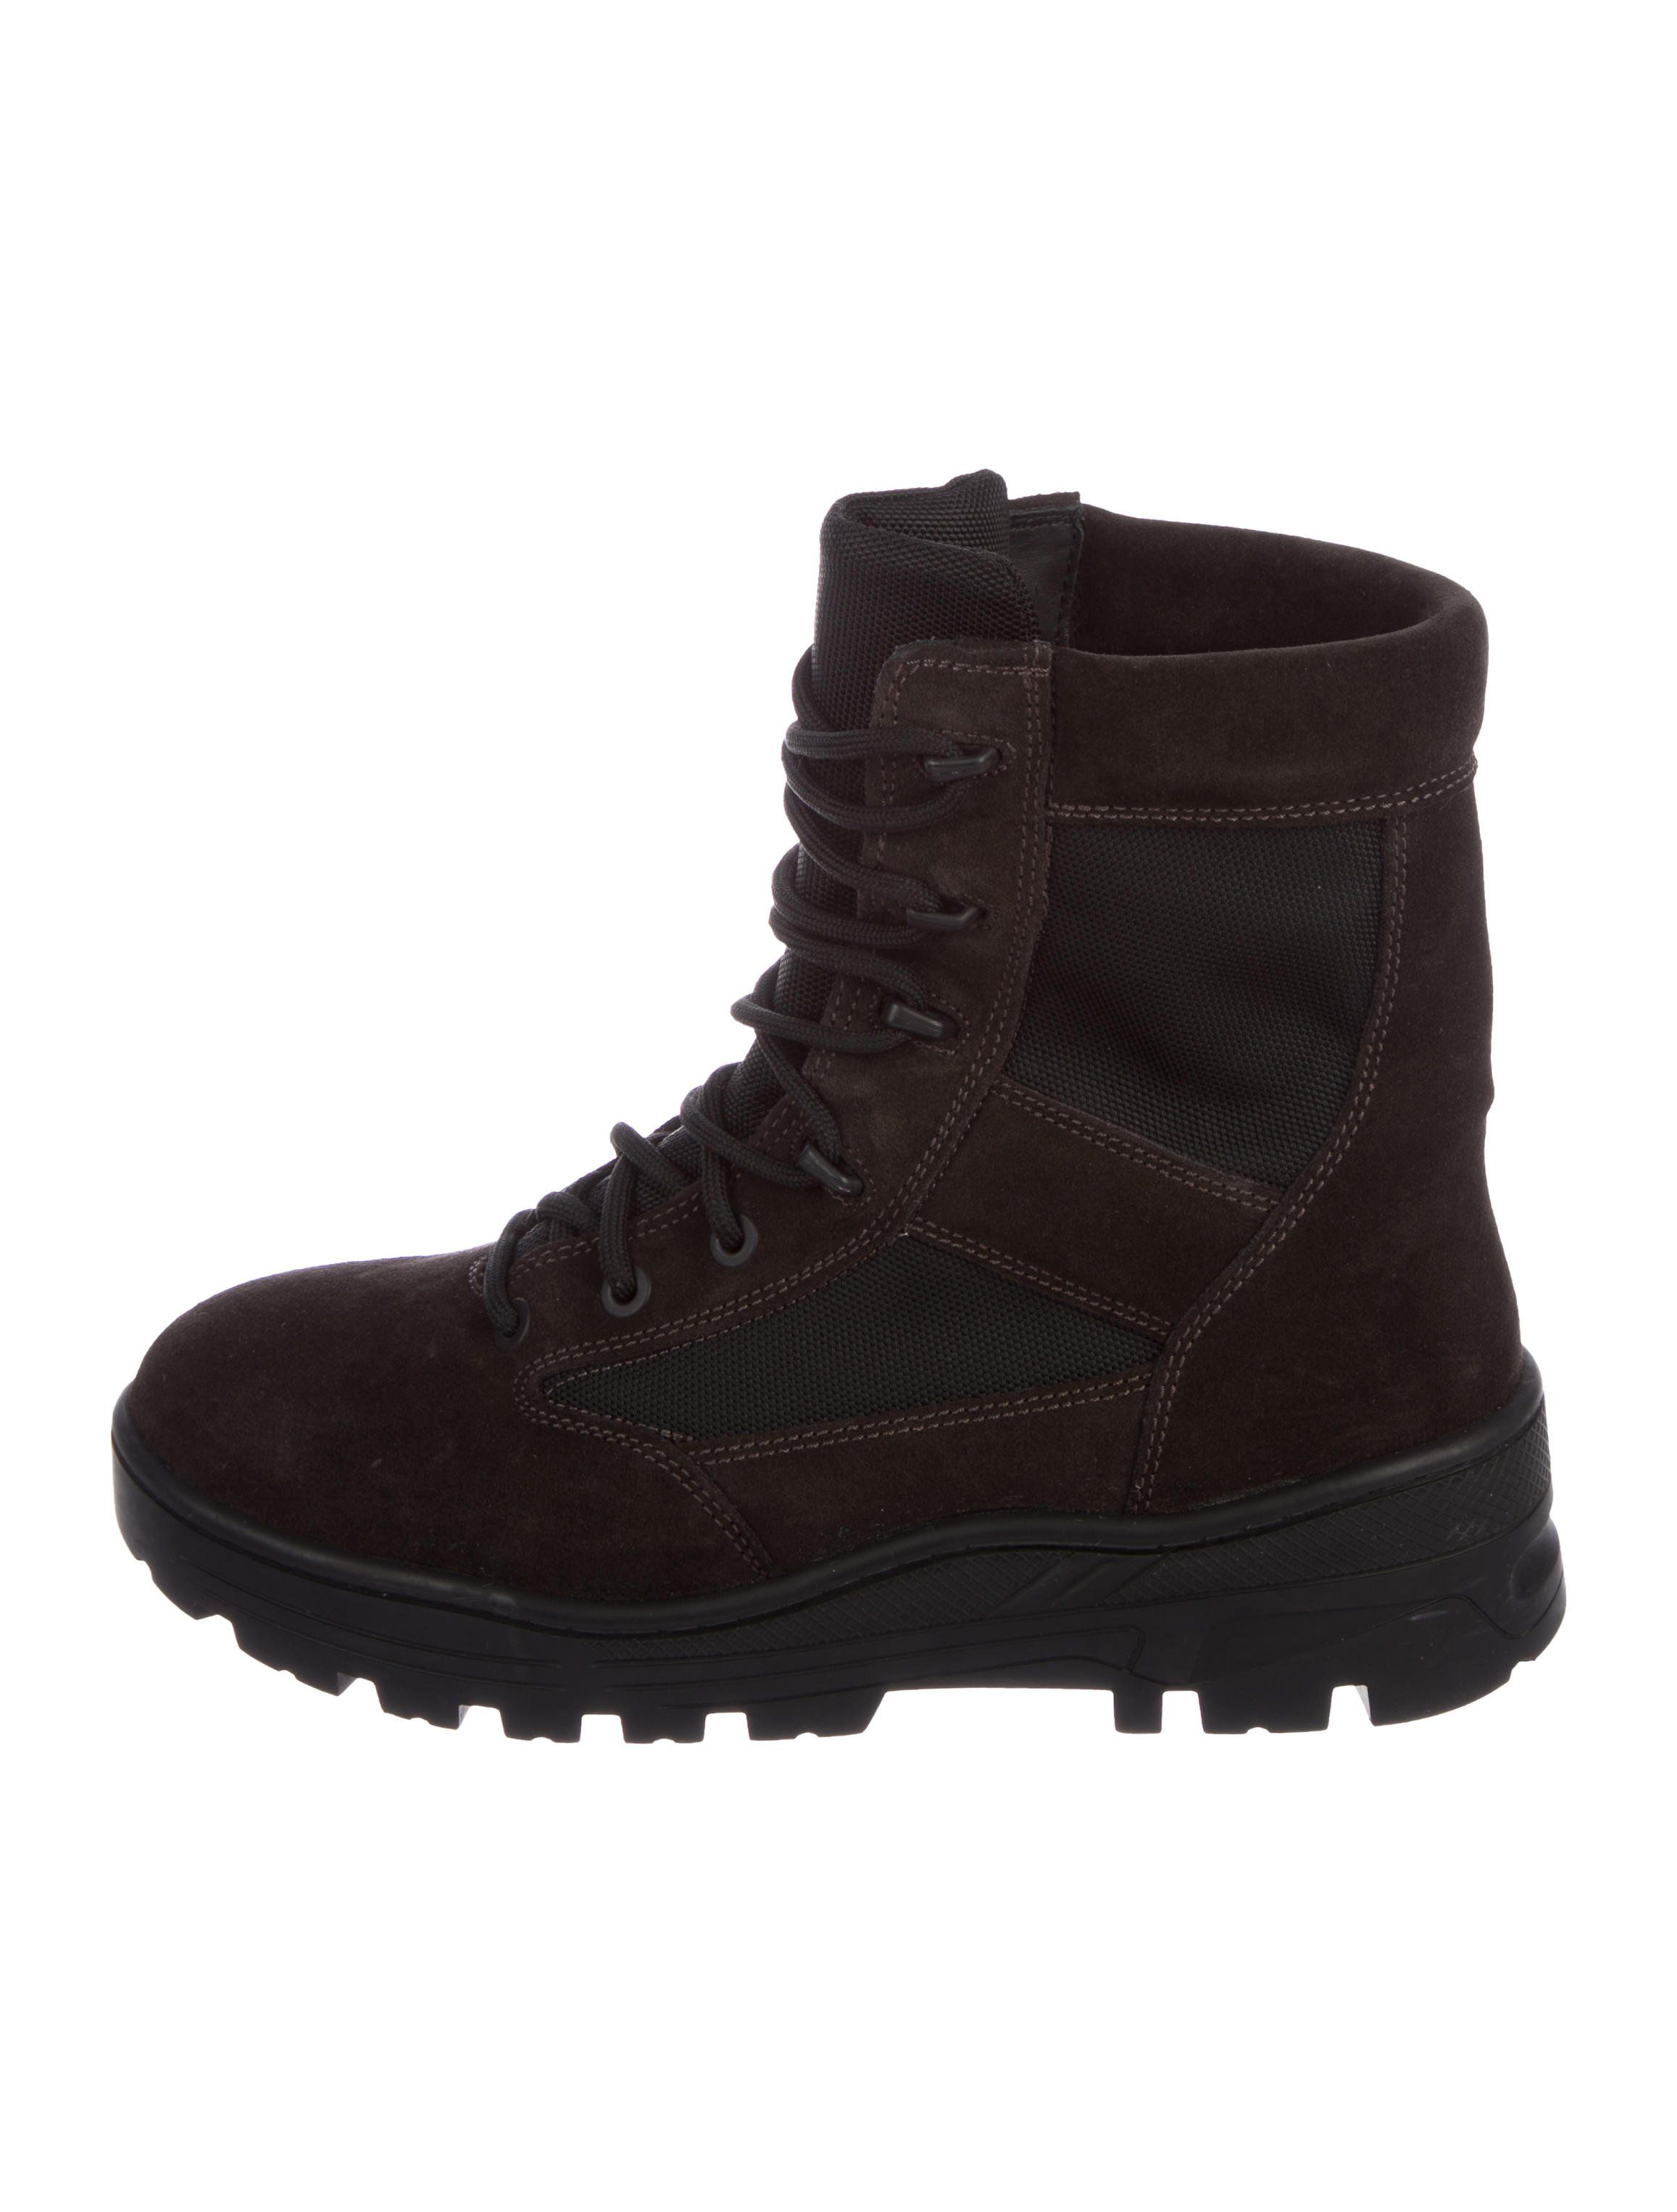 af0026cab96 Men s chocolate canvas and nylon Yeezy round-toe military boots with rubber  soles and lace-tie closures. Includes box and du